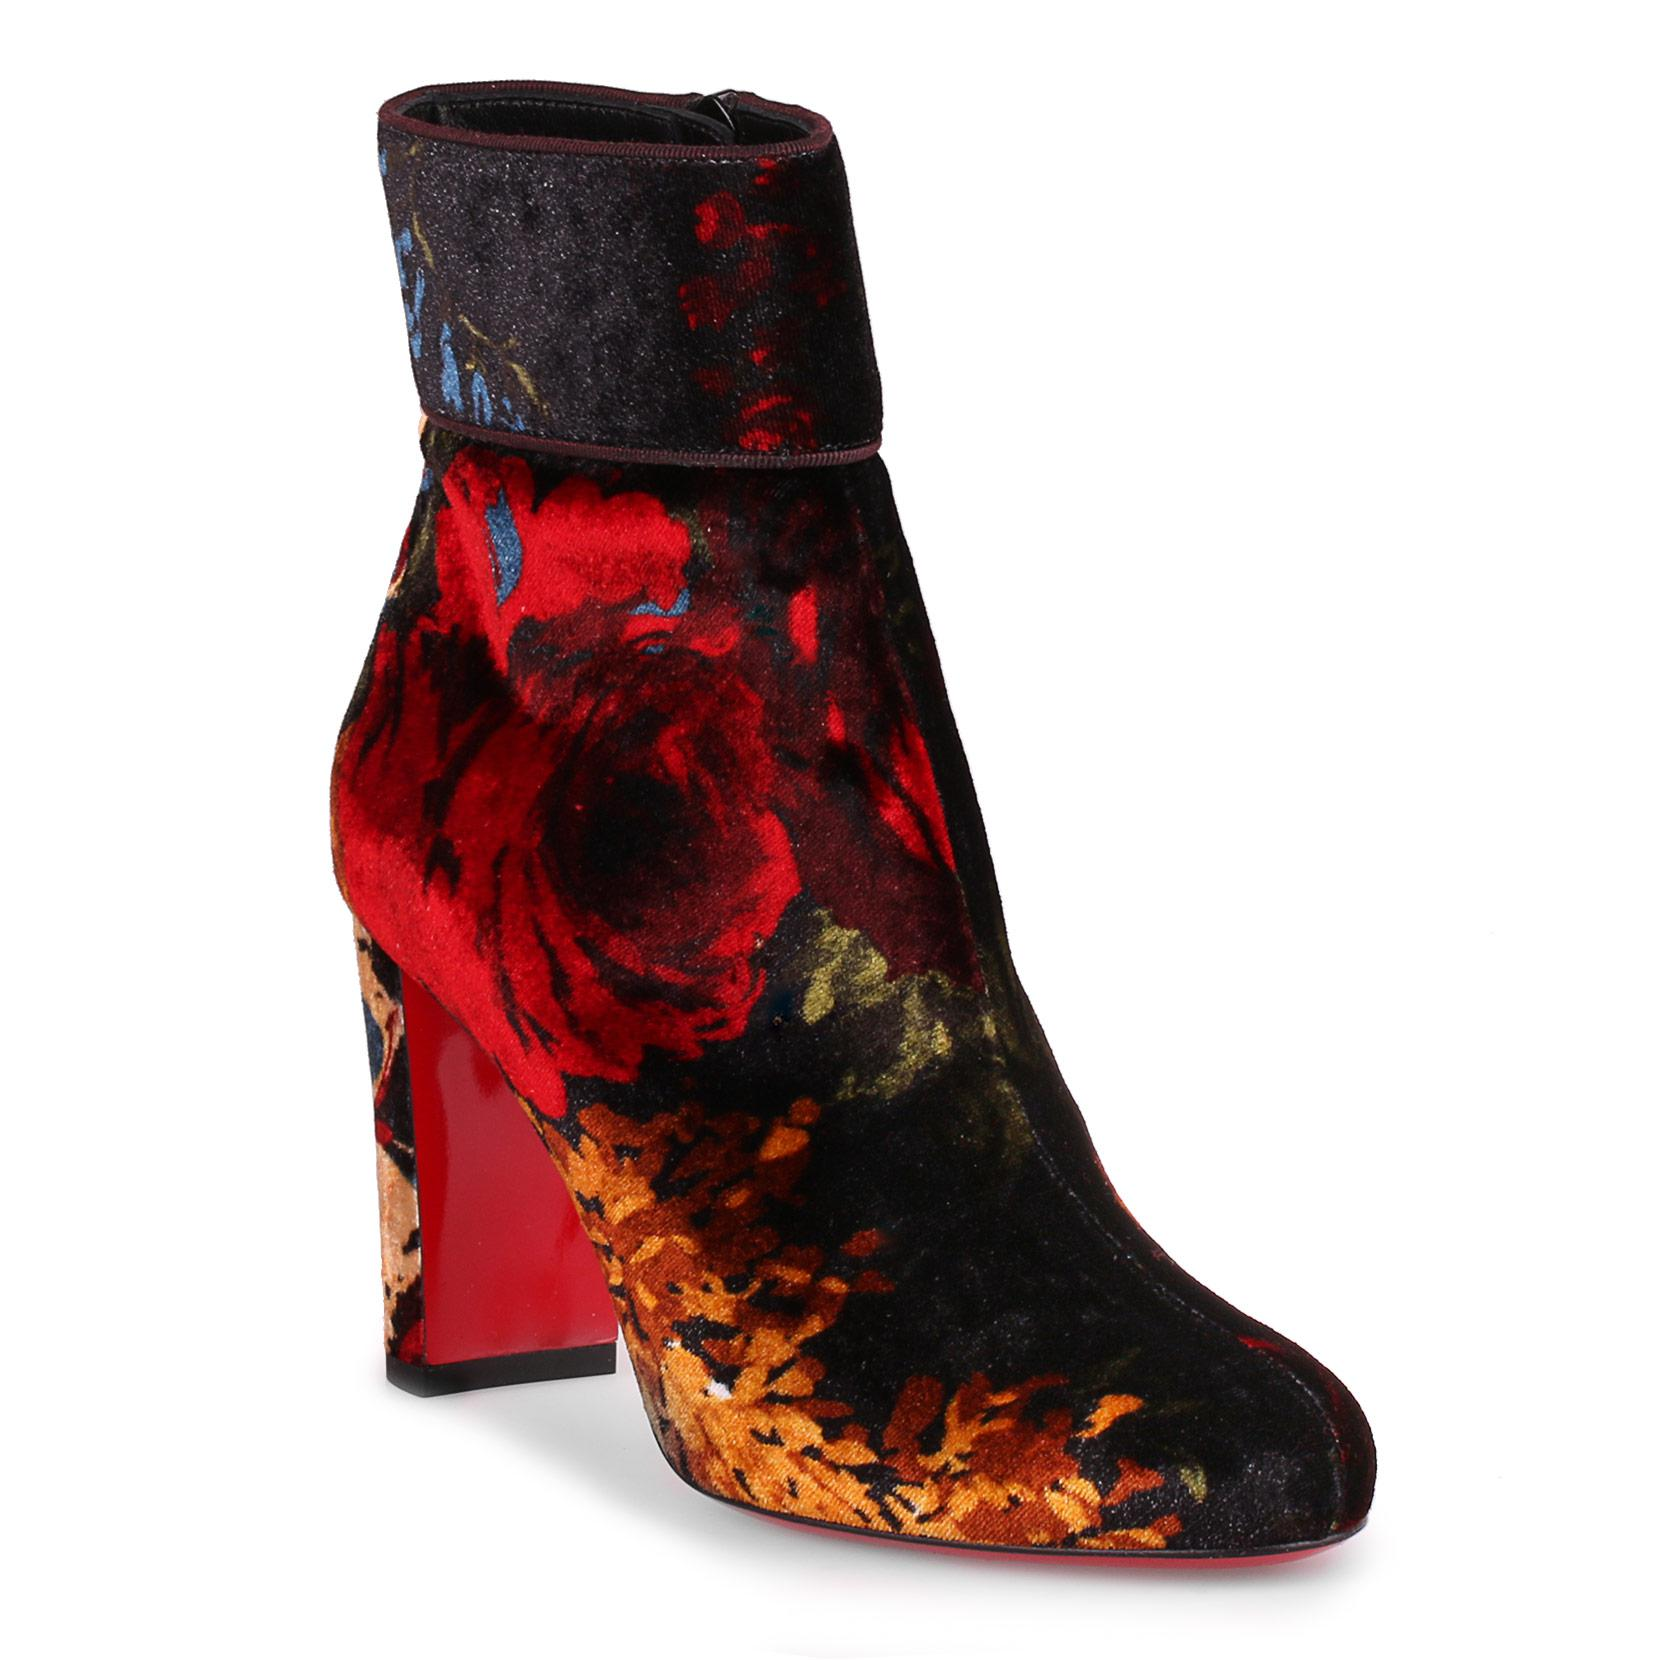 Moulamax 100 floral velvet bootie Christian Louboutin Find Great For Sale Discount Clearance Store Cheap Sale Wide Range Of Pictures Cheap Online Pick A Best Cheap Online 5Bd4kwtuY